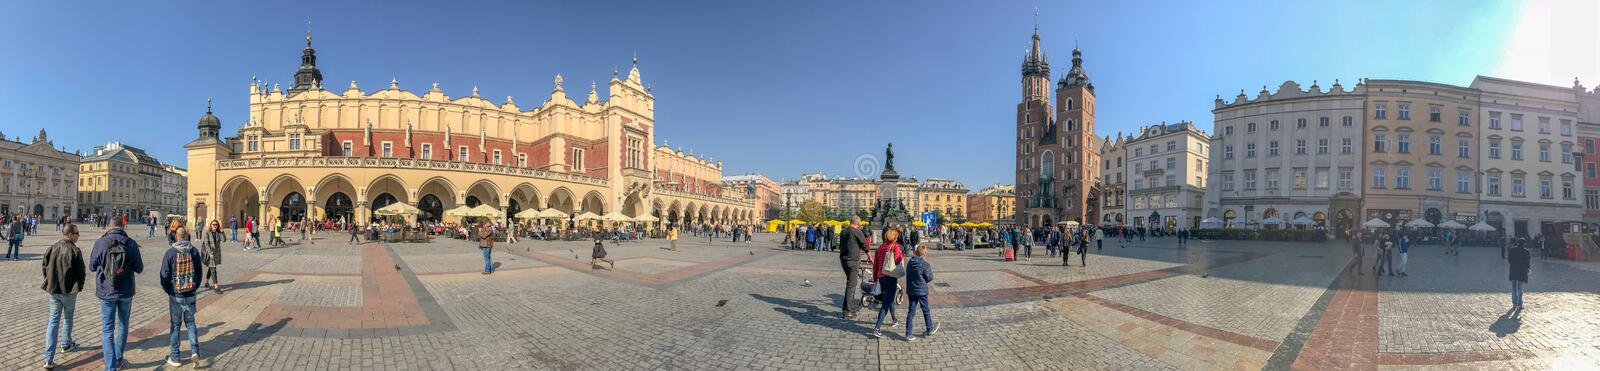 KRAKOW, POLAND - OCTOBER 2, 2017: Tourists visit main square, pa. Noramic view. The city attracts 3 million visitors annually royalty free stock image